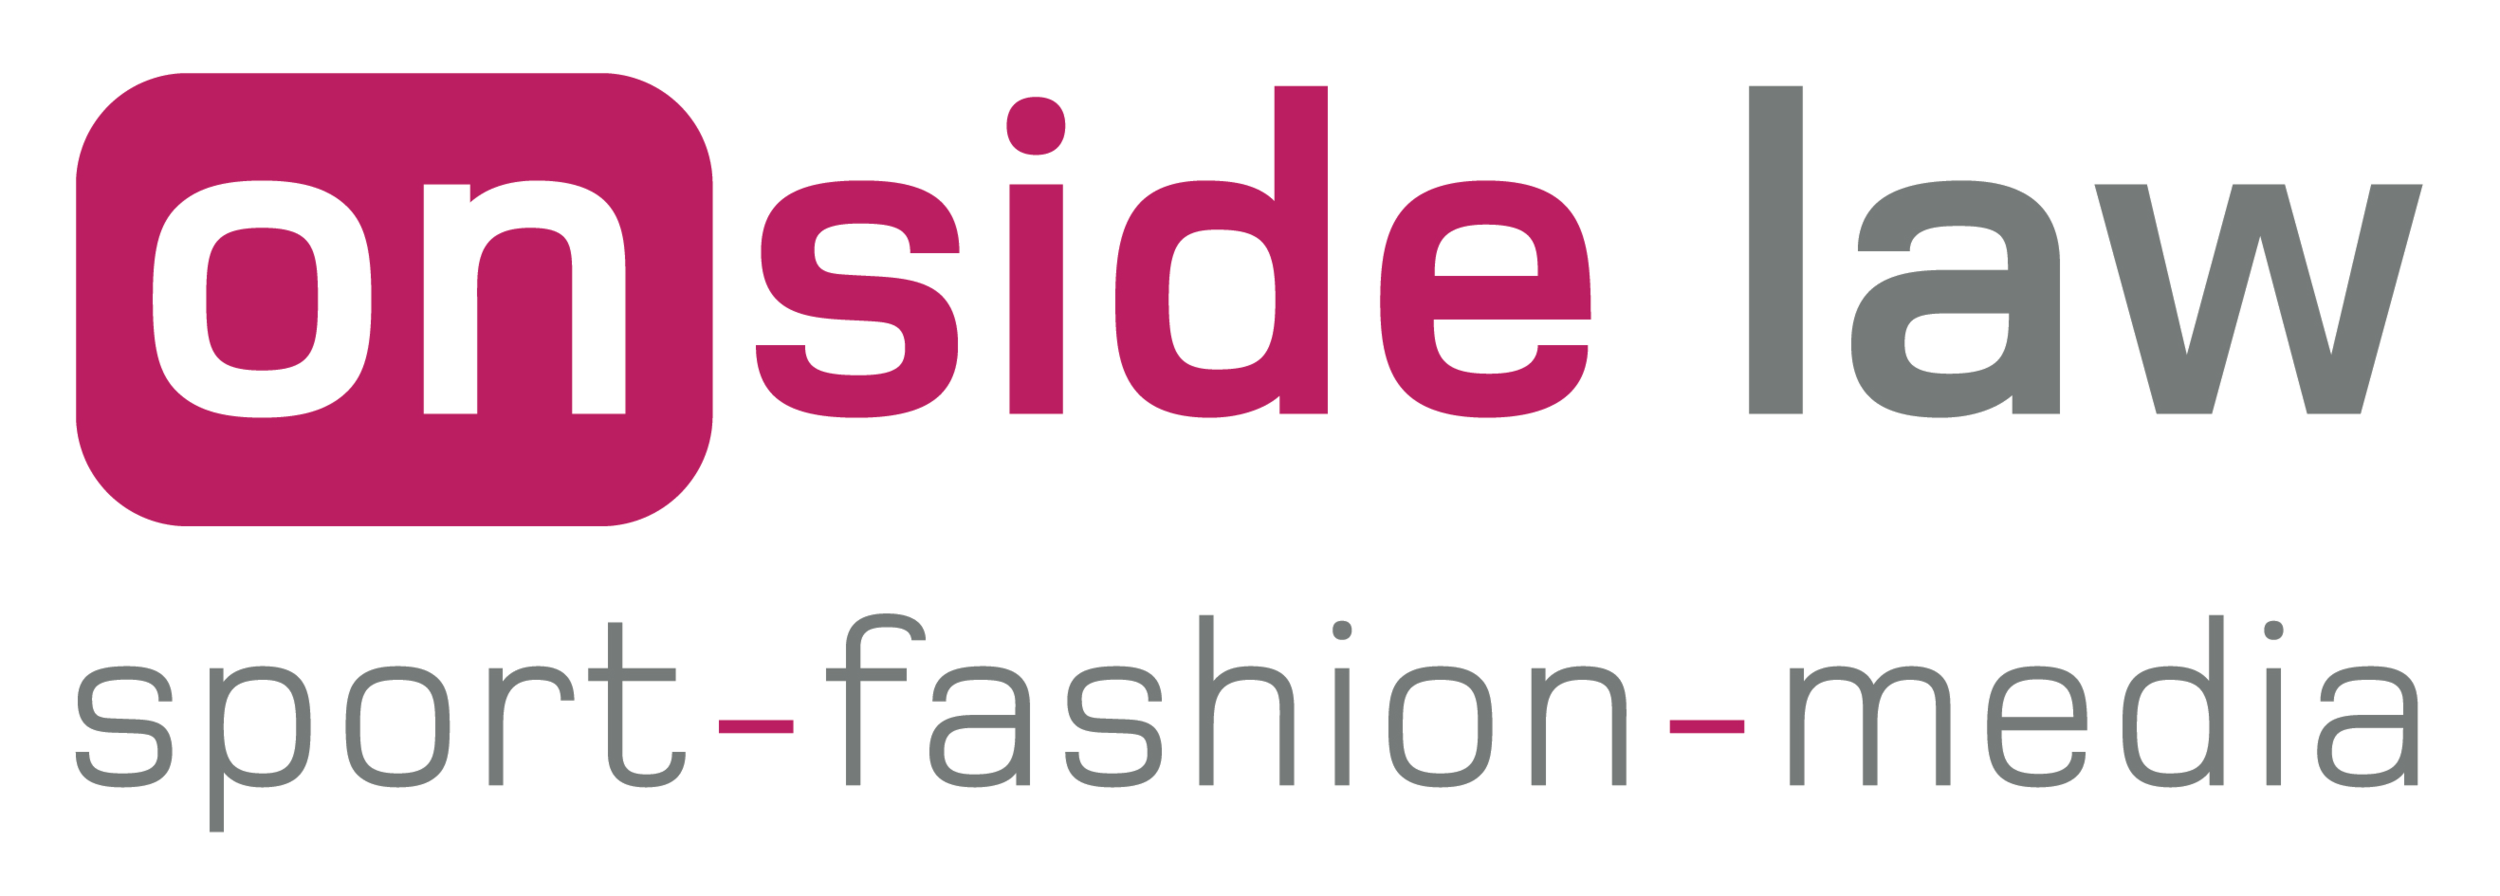 Onside Law sport-fashion-media no background.png